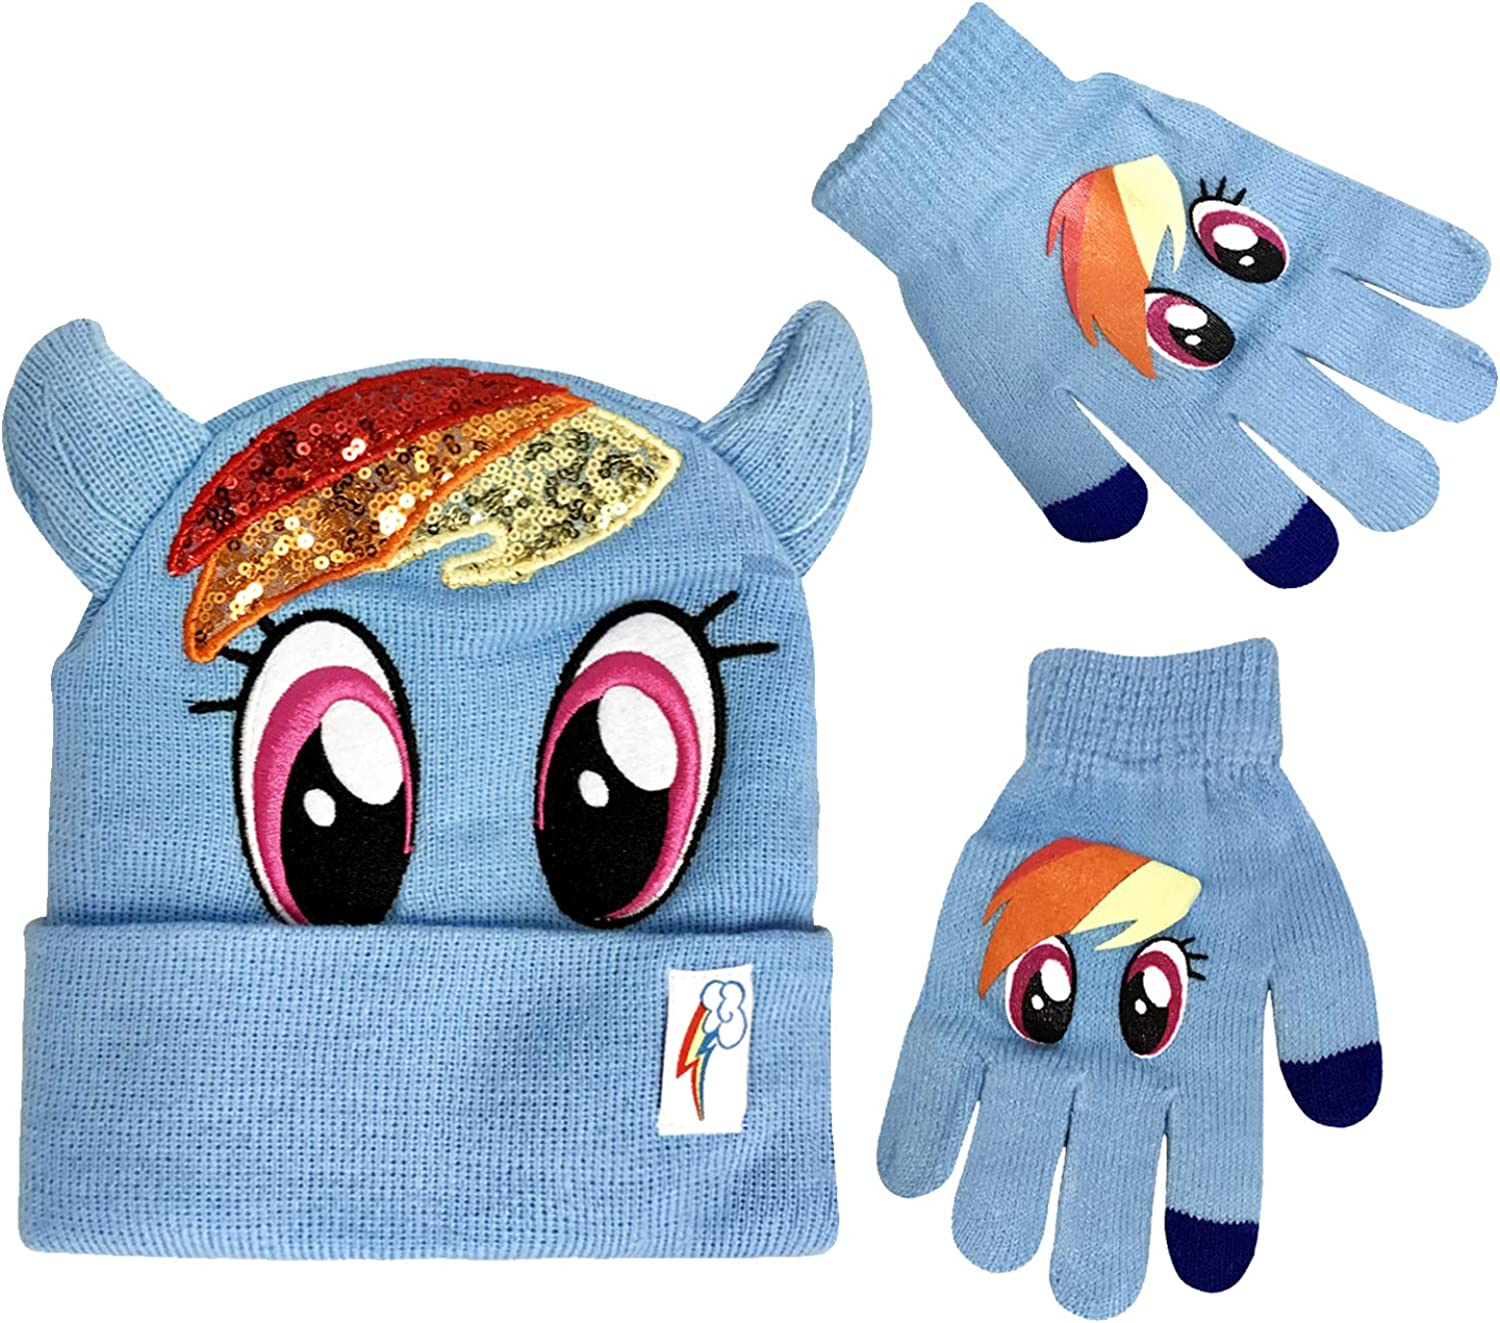 My Little Pony Winter Beanie Hat with Matching Glove Set Rainbow Dash Character [4015]